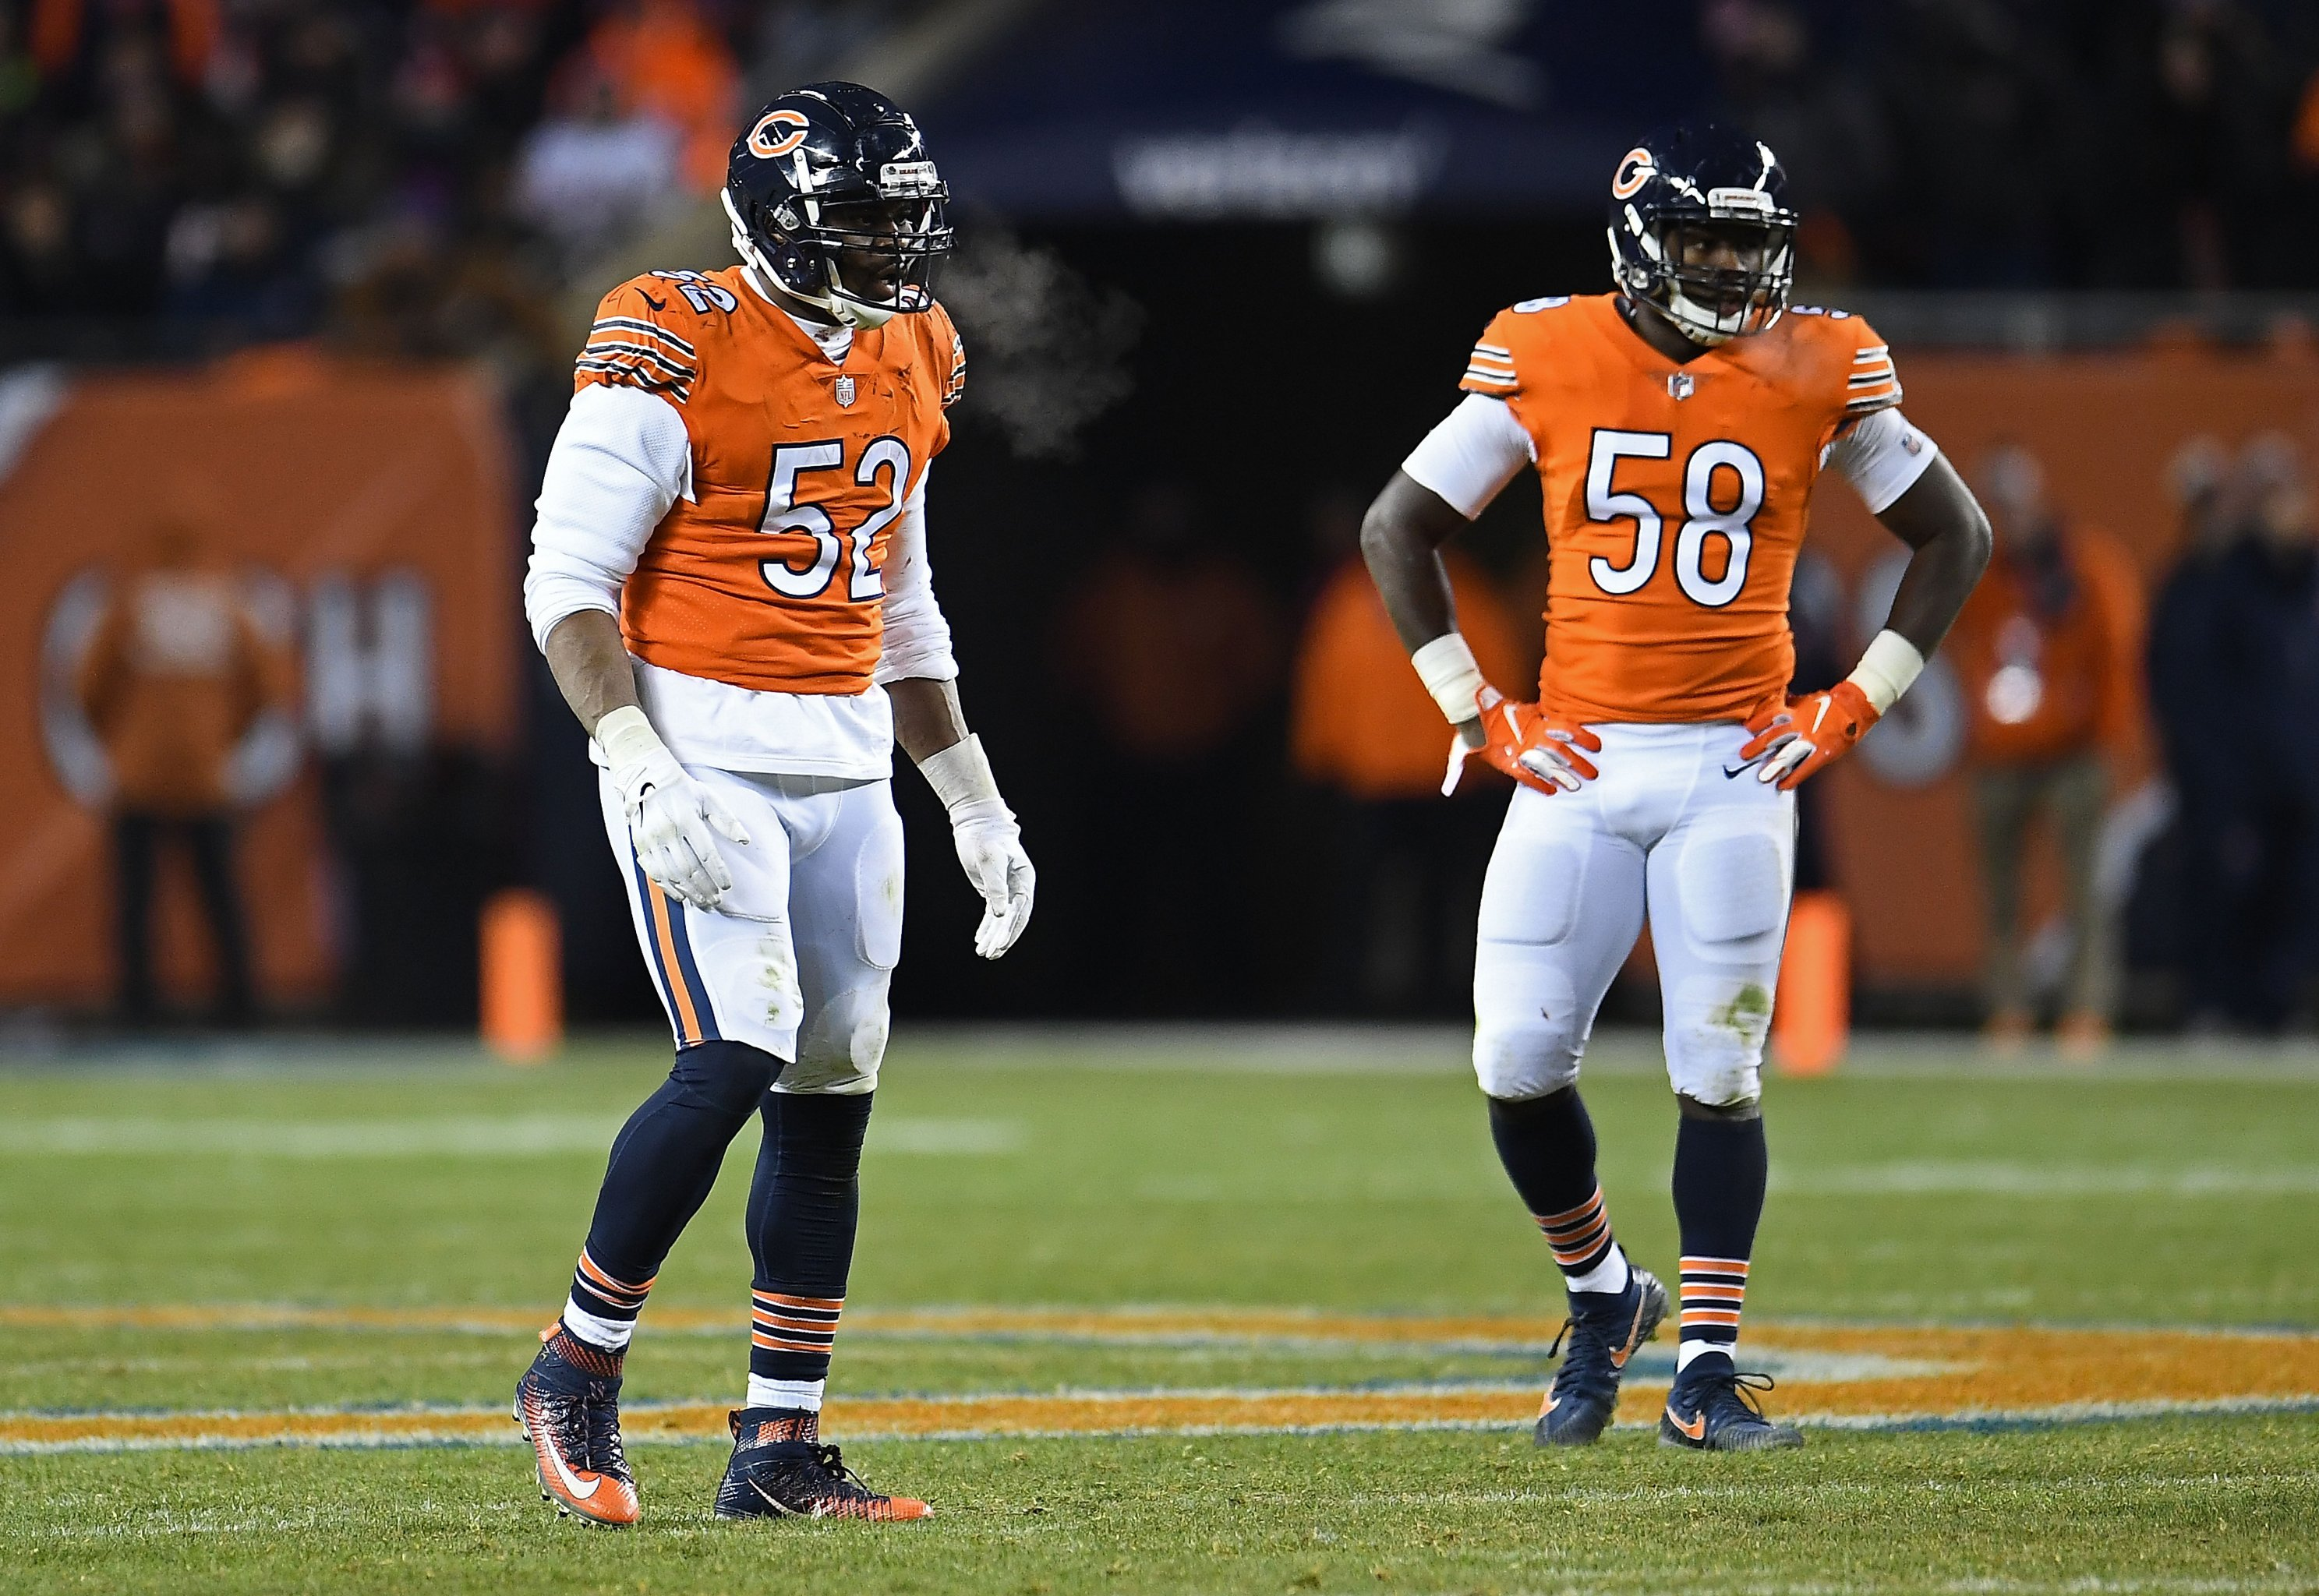 Best Nfl Defenses 2020.Power Ranking Every Nfl Defense After The 2019 Draft